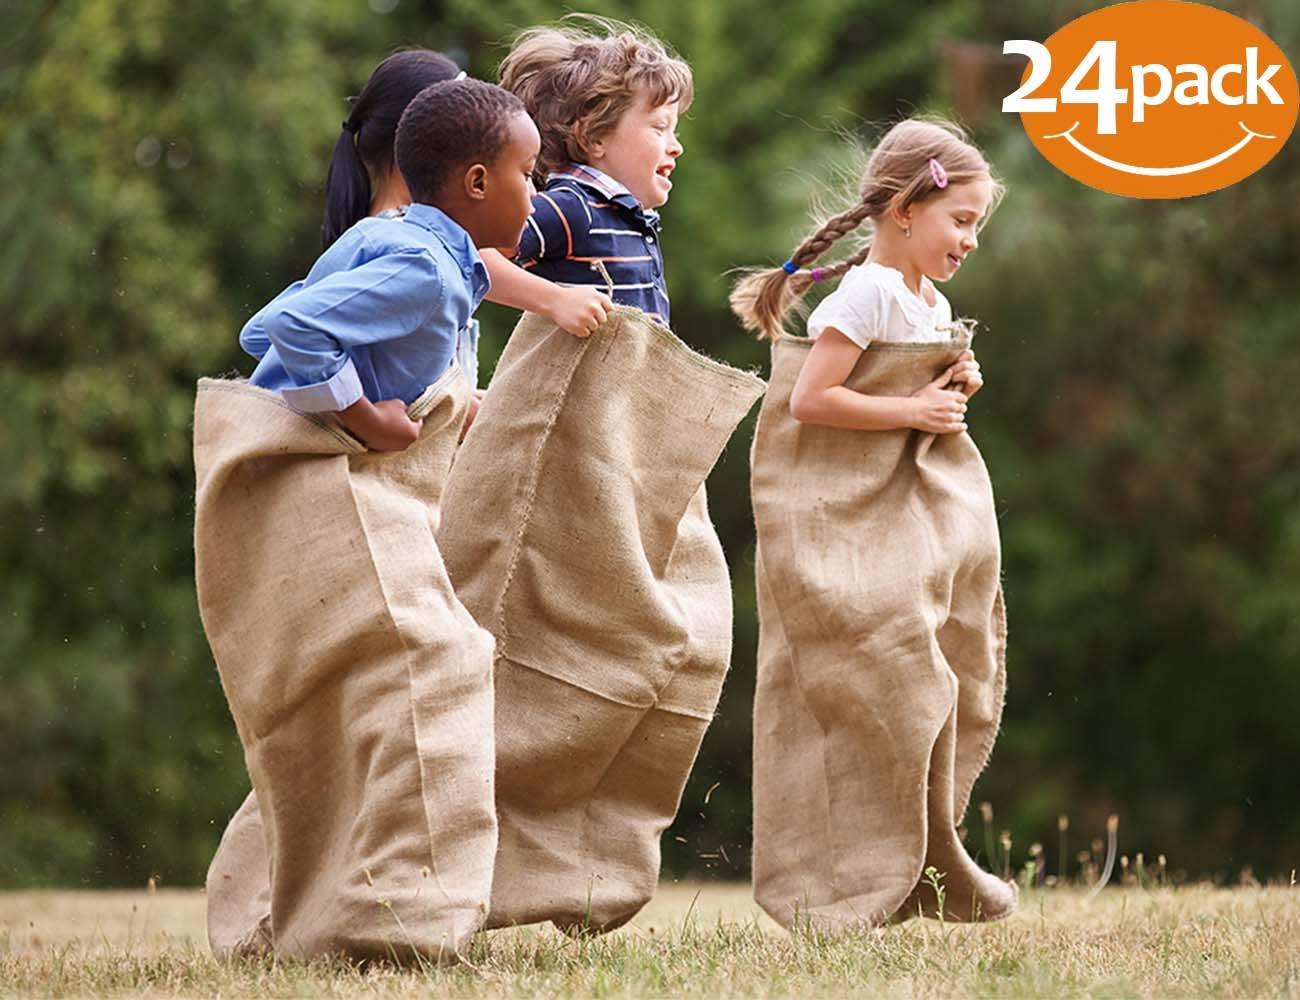 ToysOpoly #1 Premium Burlap Potato Sack Race Bags 24'' x 40'' (Pack of 24) - of Sturdy Rugged, 100% Natural Eco-Friendly Jute , Perfect Birthday Party Game for Kids & Adults